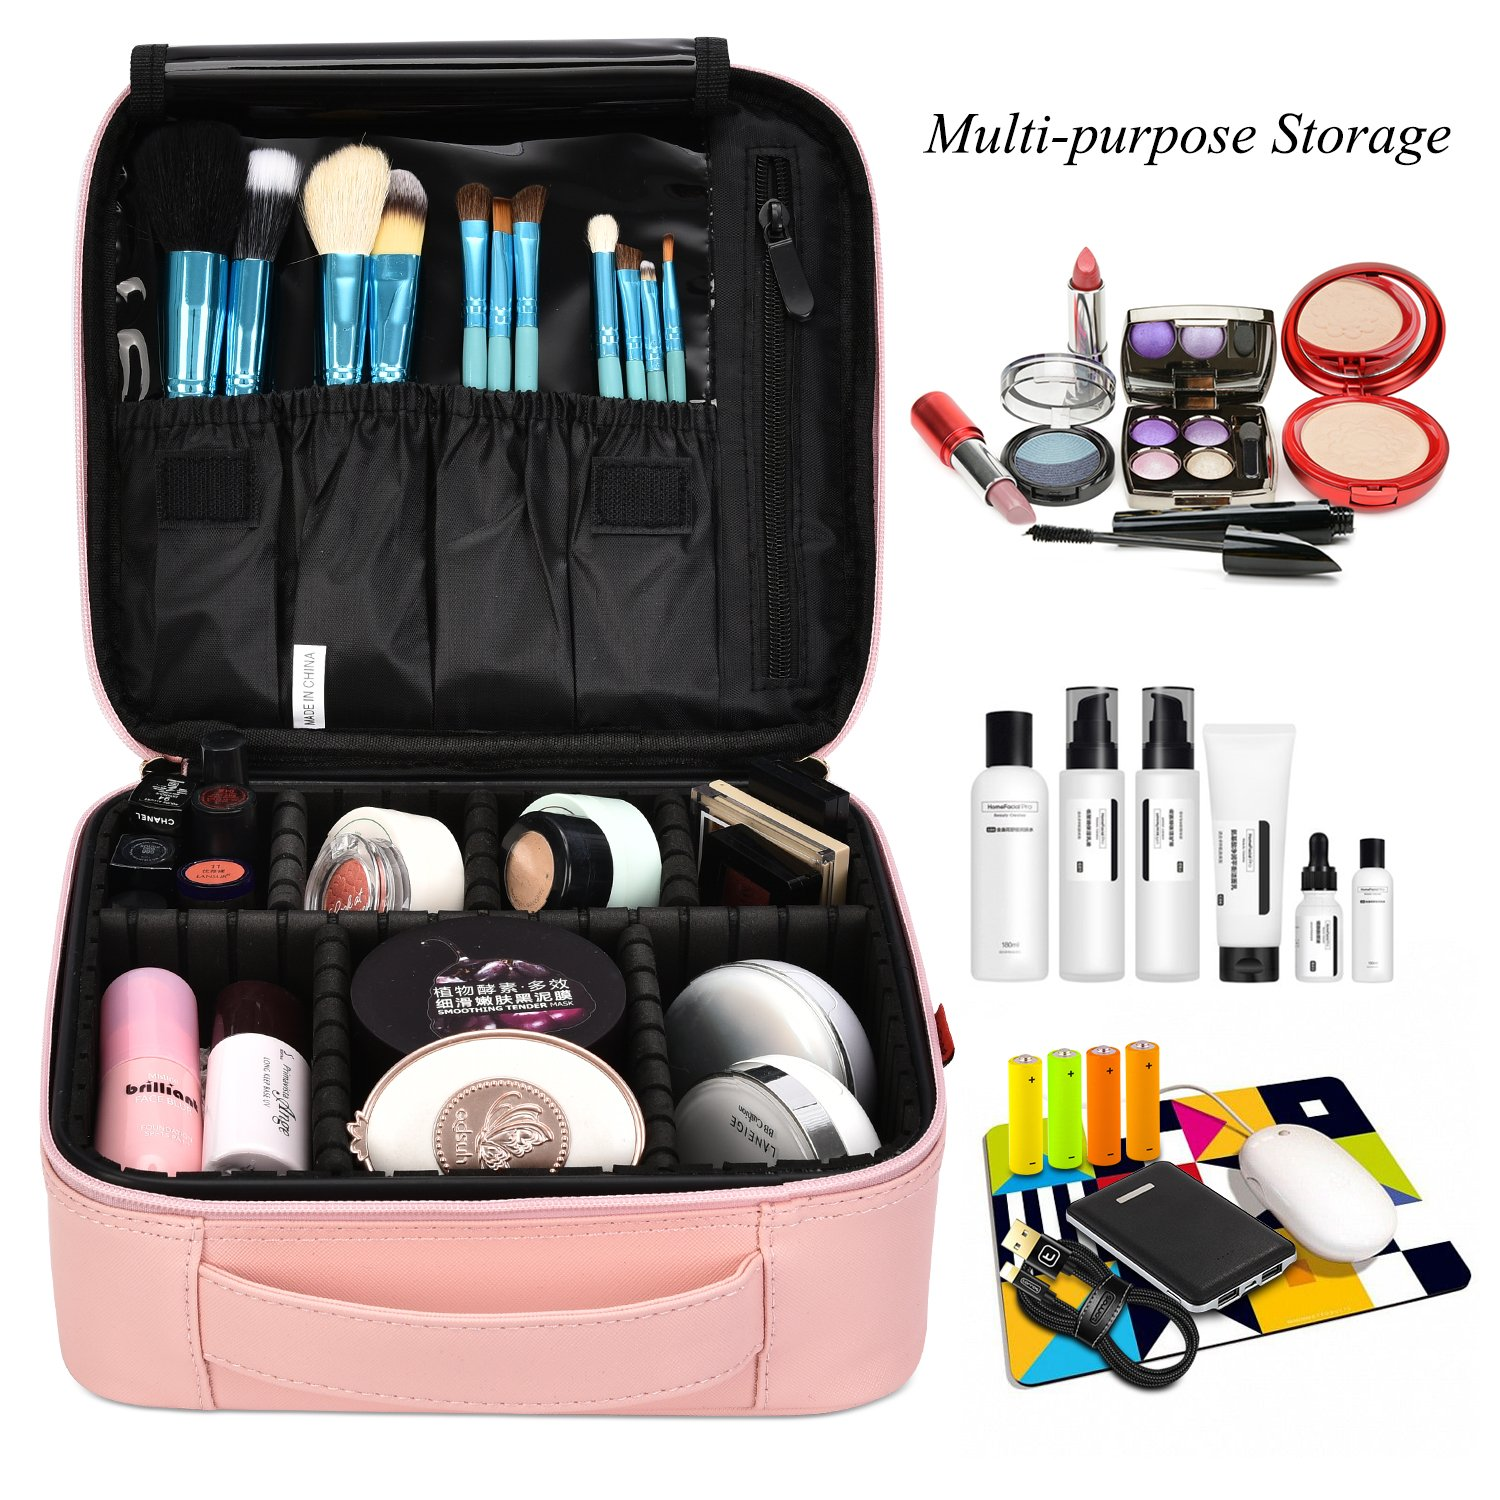 Lifestyle blogger Lexi of Glitter, Inc. shares her favorite weekly finds from around the web, including this NiceEbag Travel Makeup Bag Portable rain Case Storage Organizer with Adjustable Dividers | glitterinc.com | @glitterinc